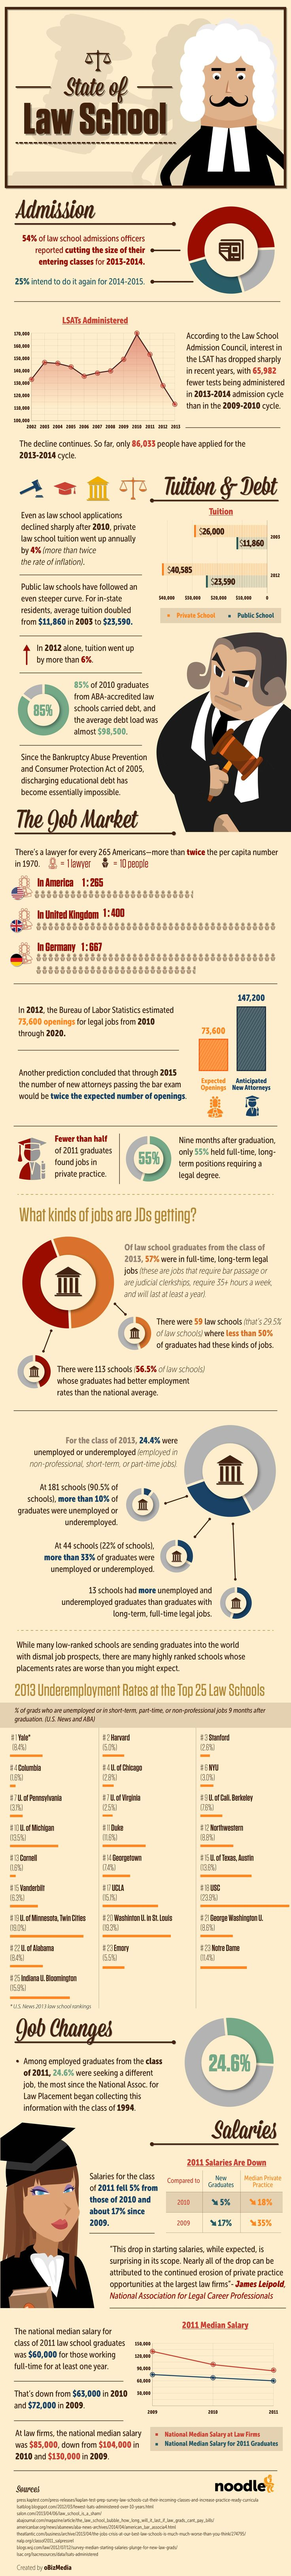 78 best lsat and law school entertainment images on pinterest law the abas data shows that employment prospects are slightly better than last year for new jds but still have not recovered from a difficult few malvernweather Image collections